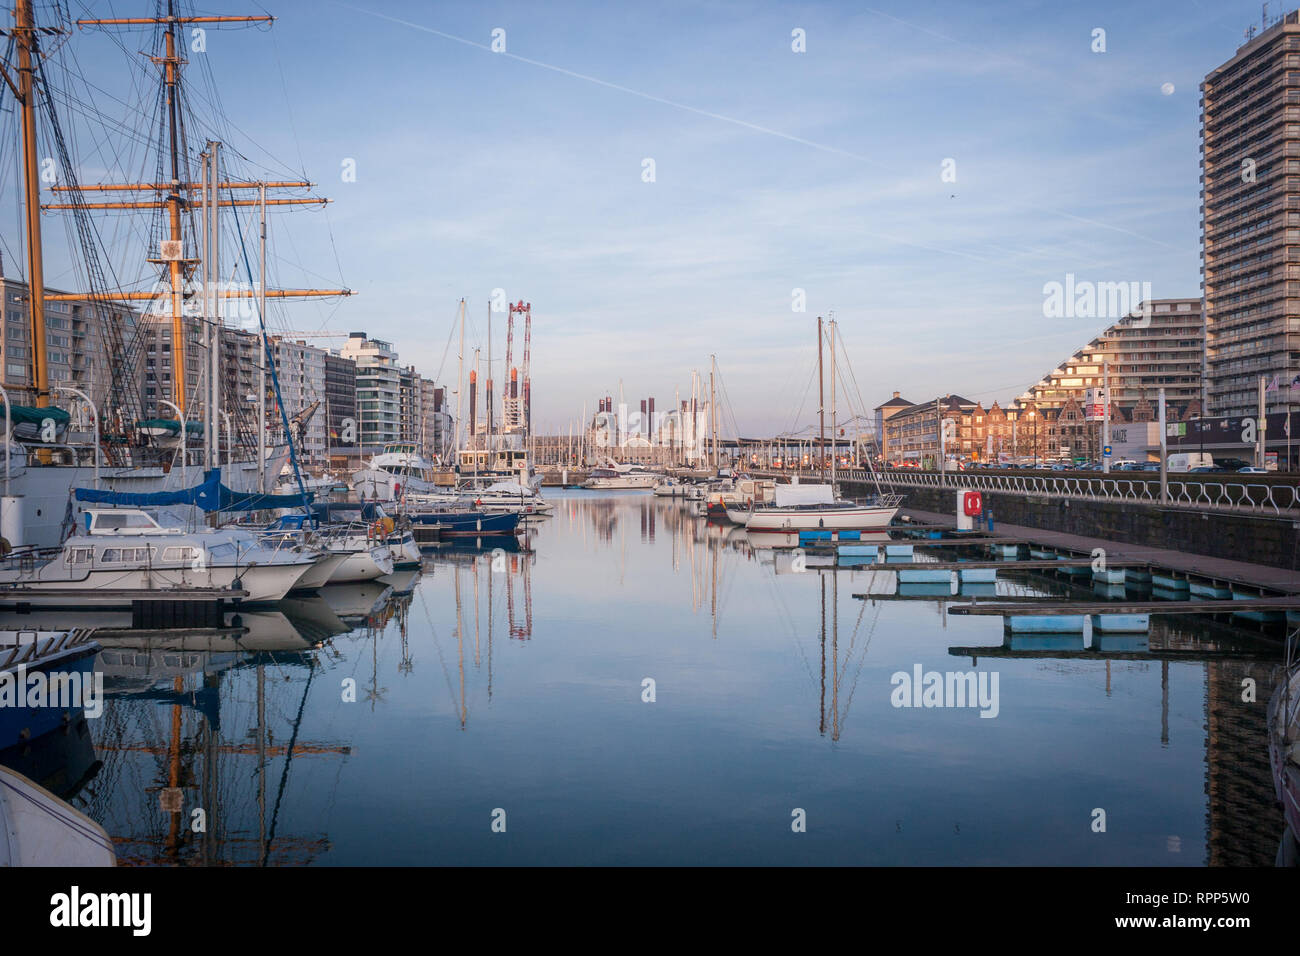 Oostede / Belgium - February 17 2019: The sun sets over the harbor in Oostende during an unusually warm spell that has attracted thousands of visitors. - Stock Image